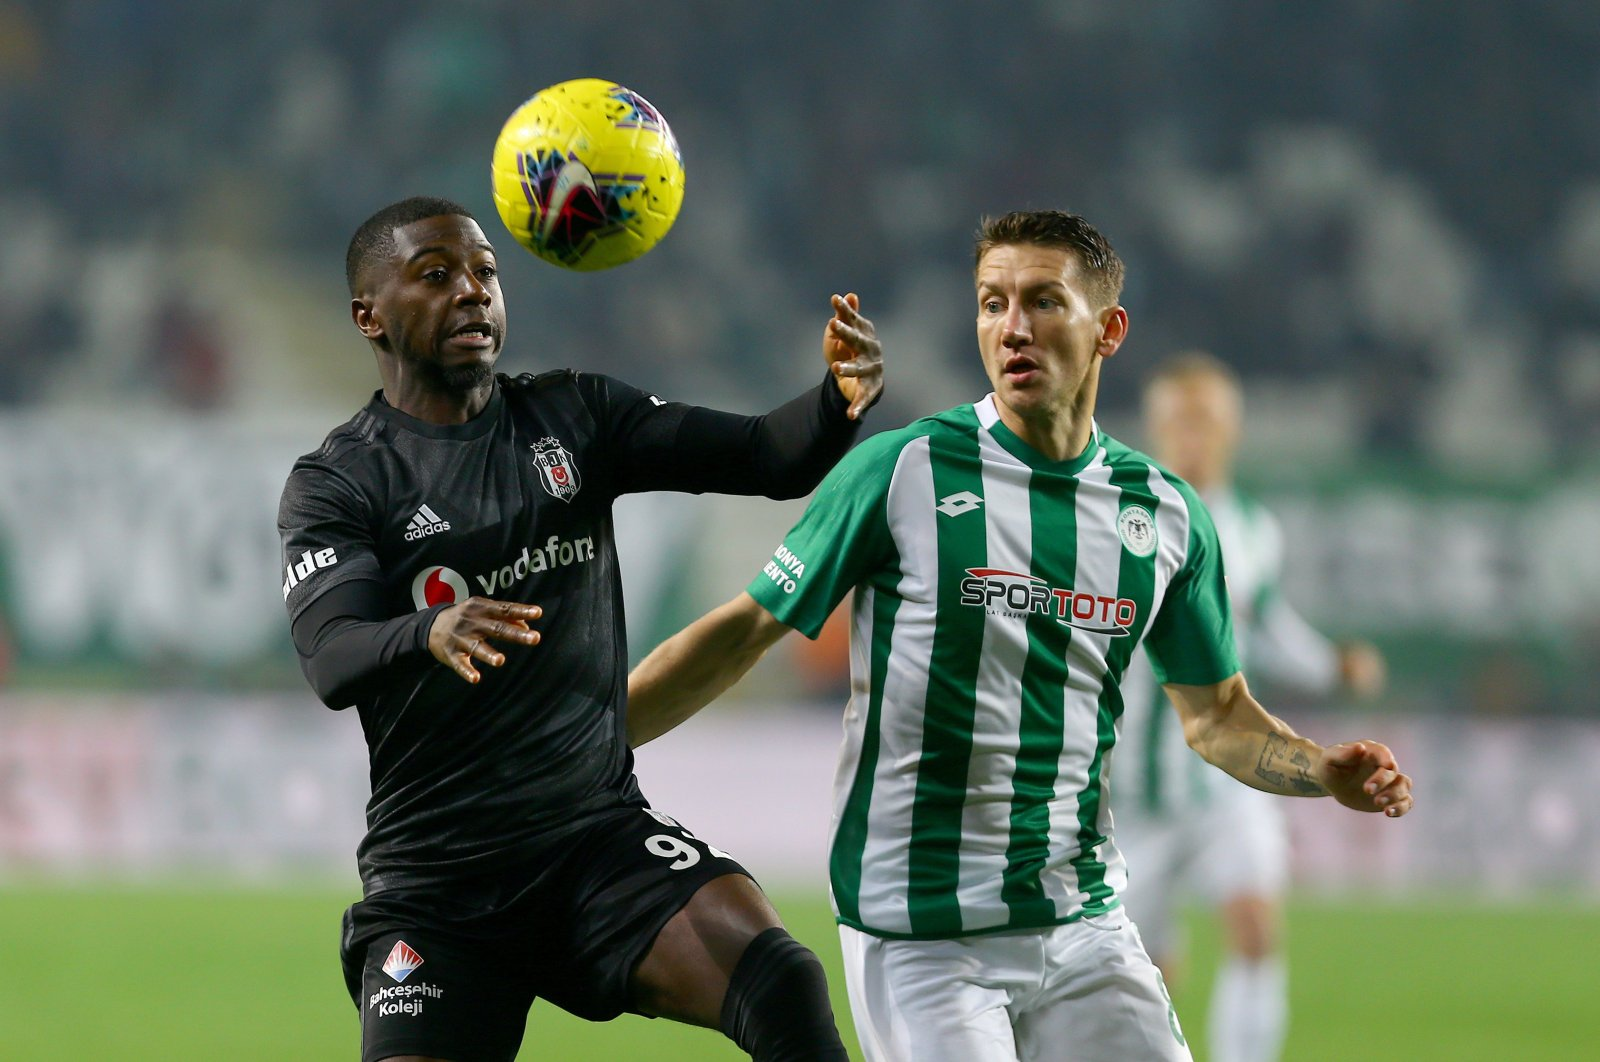 Beşiktaş's Abdoulay Diaby, who is on loan from Portugal's Sporting CP, during a Süper Lig match against Konyaspor, in Konya, Turkey, Nov. 23, 2019. (AA Photo)